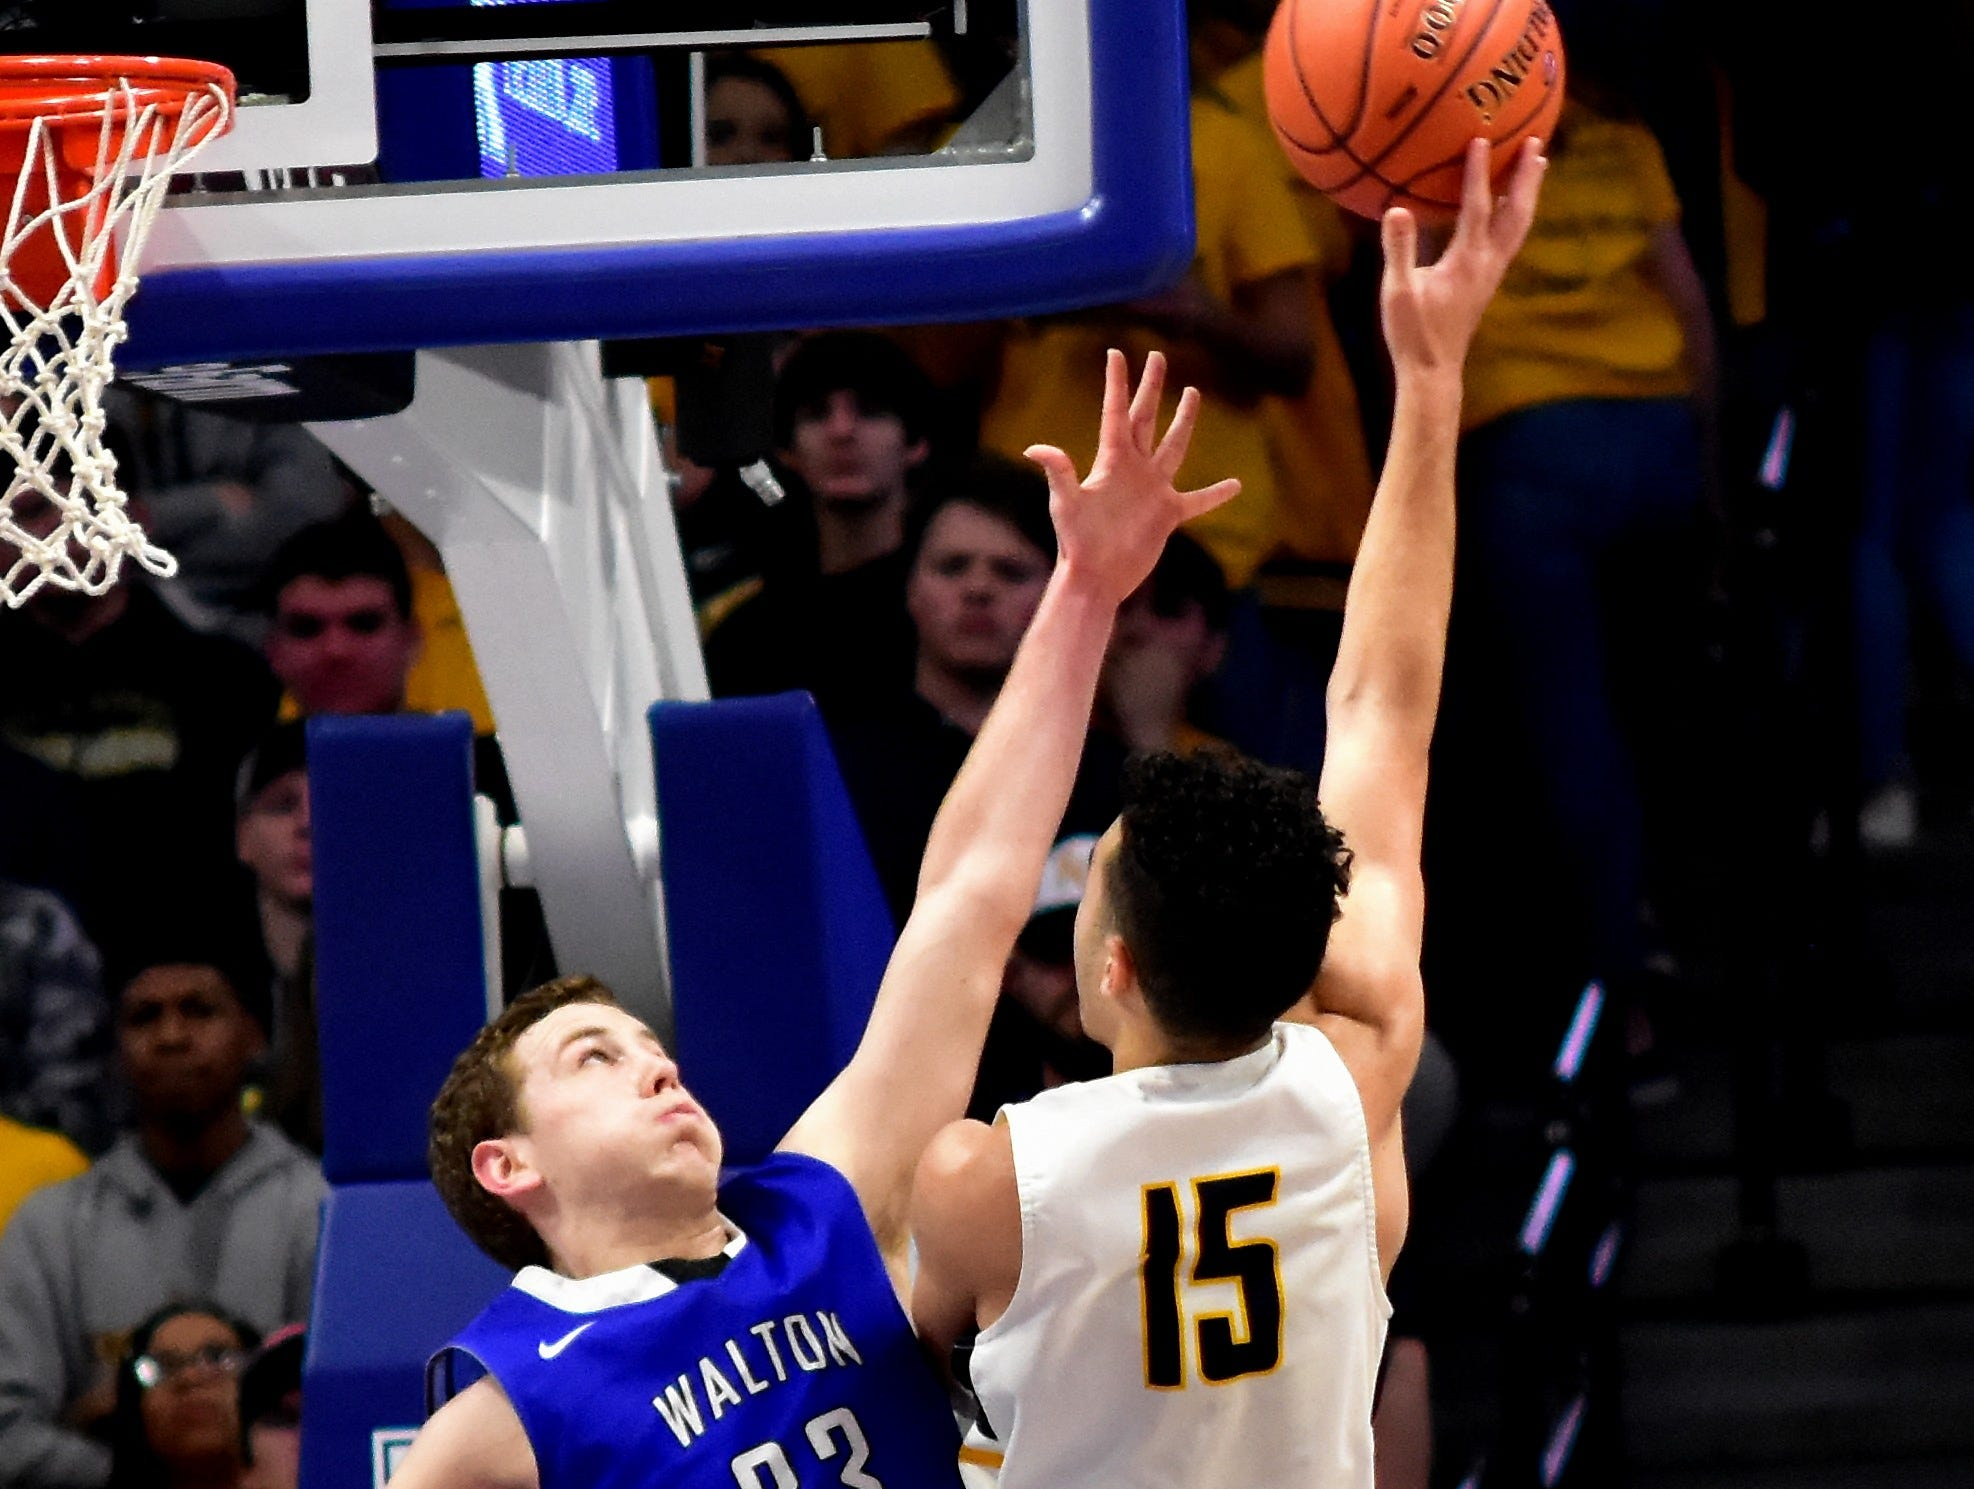 Walton Verona's Grant Grubbs tries to block an incoming Knox Central jumper at the KHSAA Sweet 16 Tournament at Rupp Arena in Lexington, KY, March 6, 2019